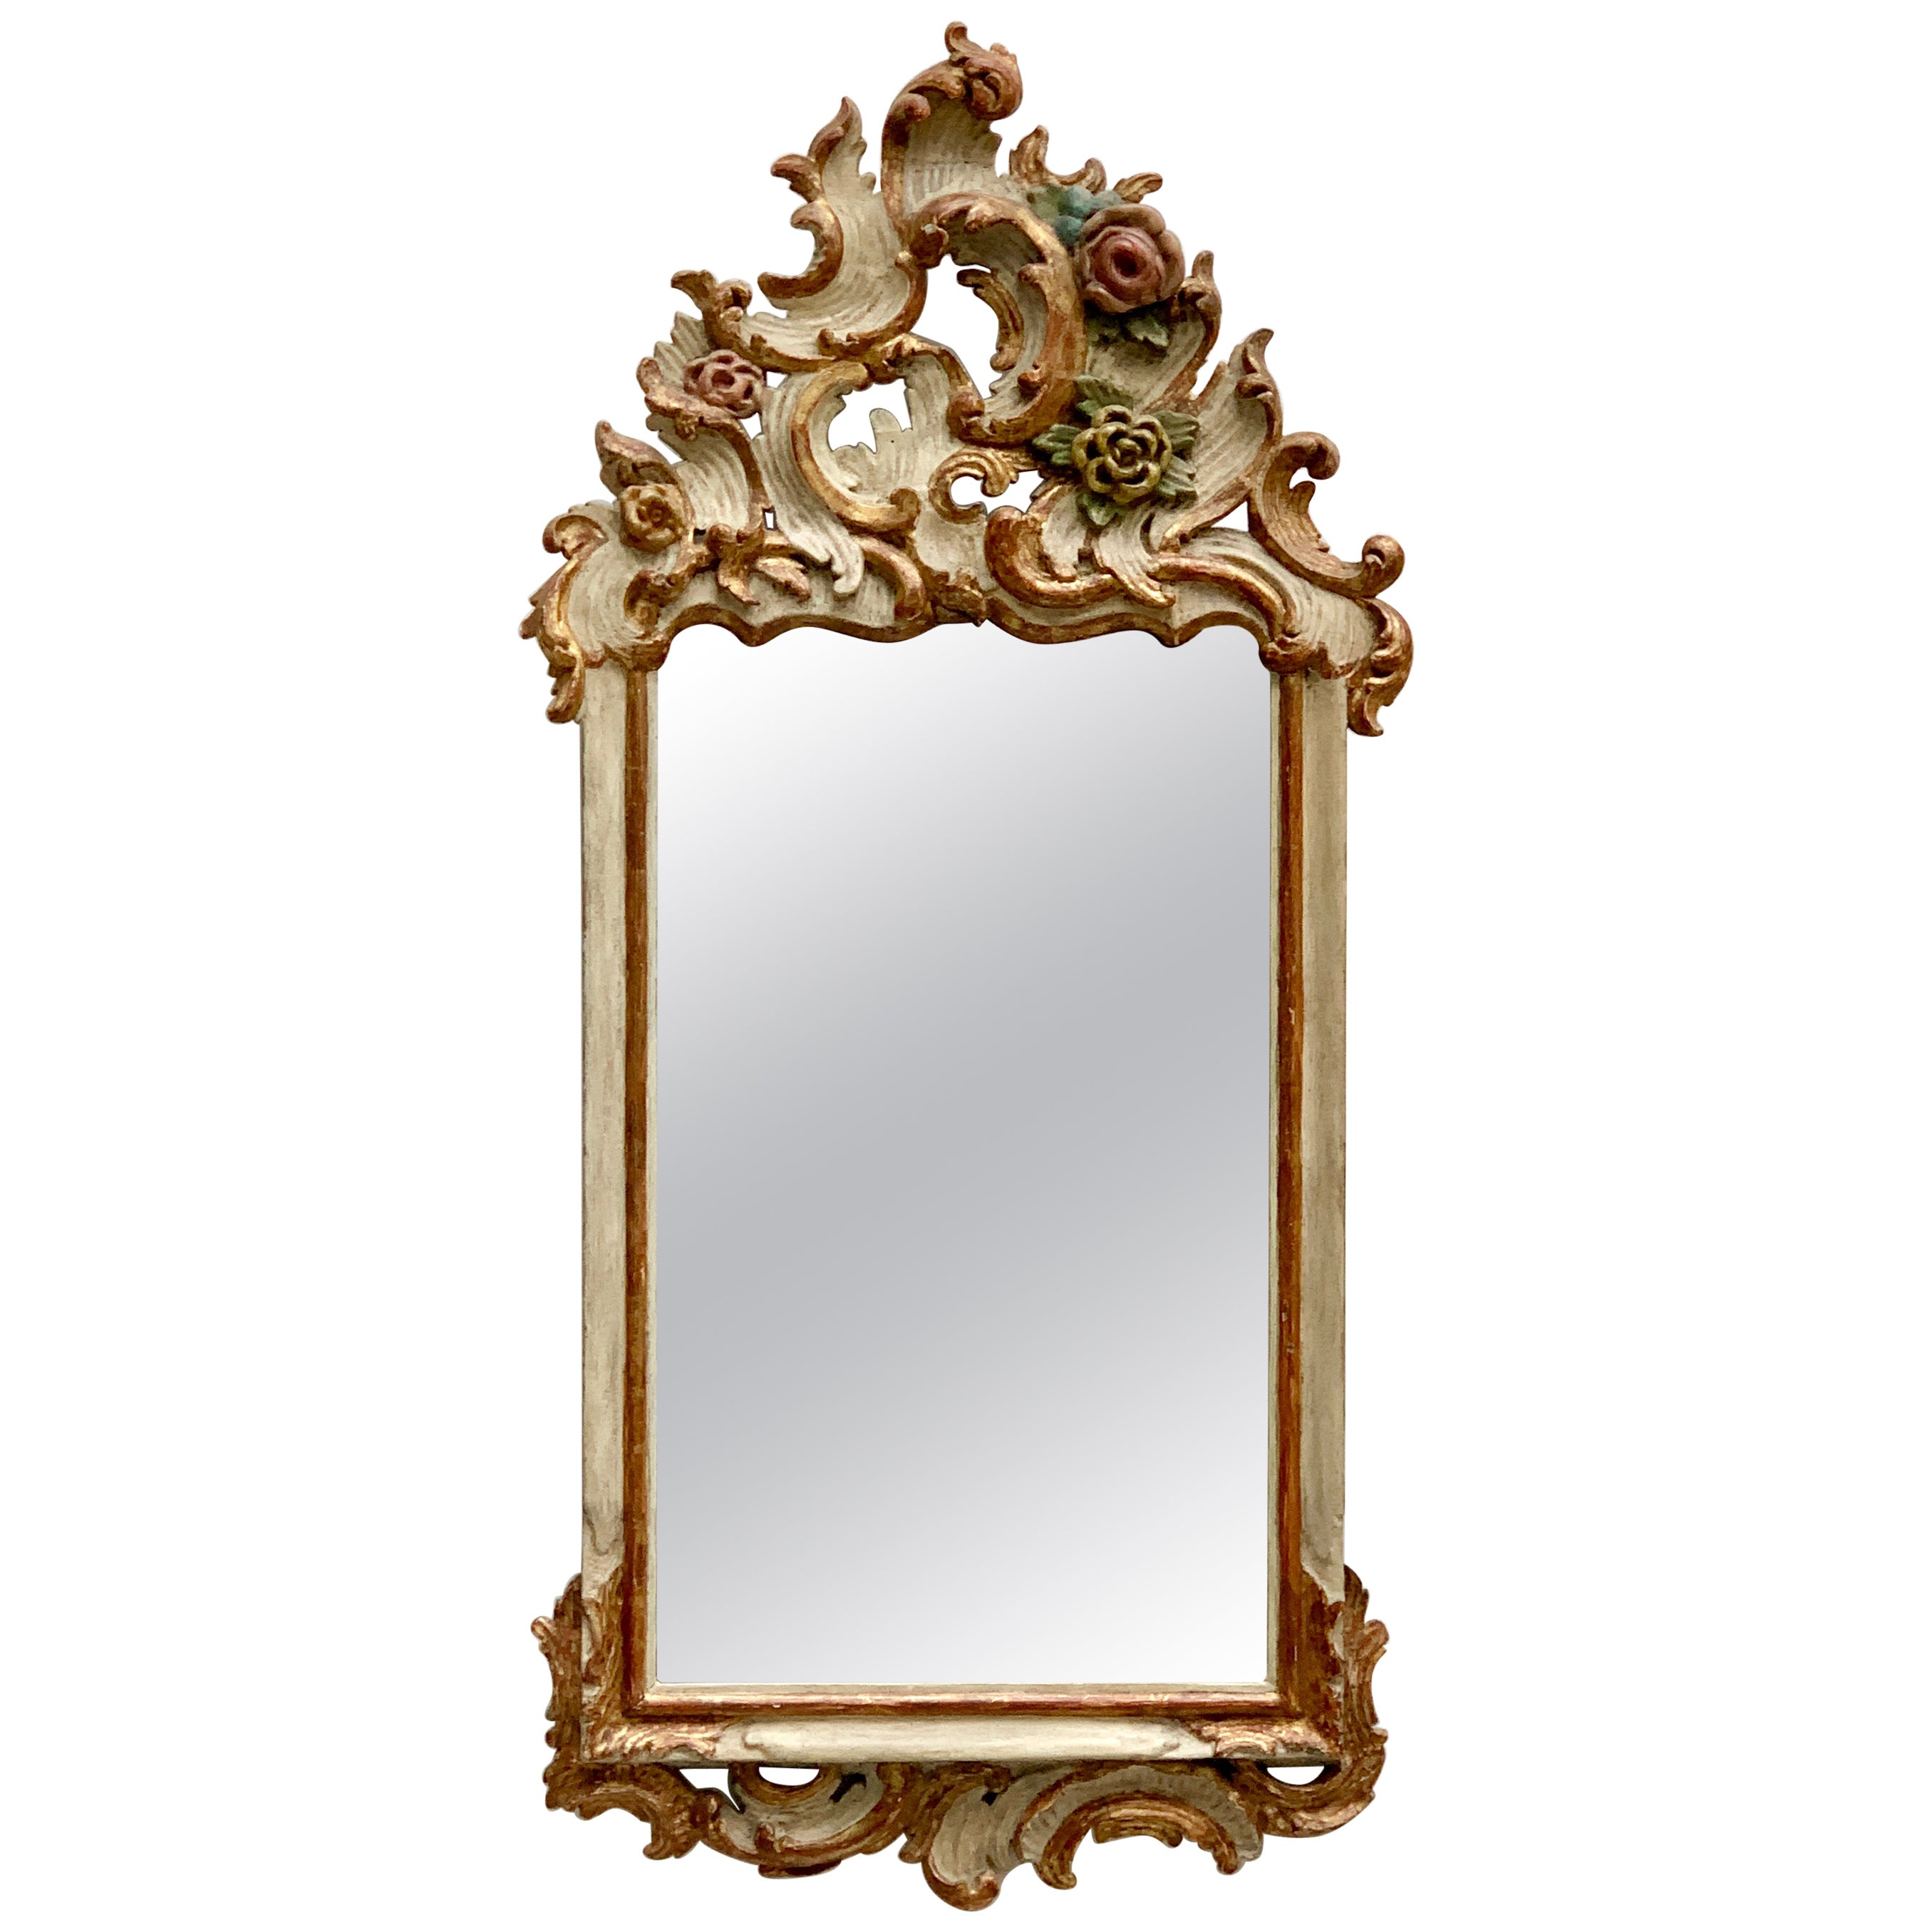 German 18th Century Rococo Mirror, Bavaria, White Painted